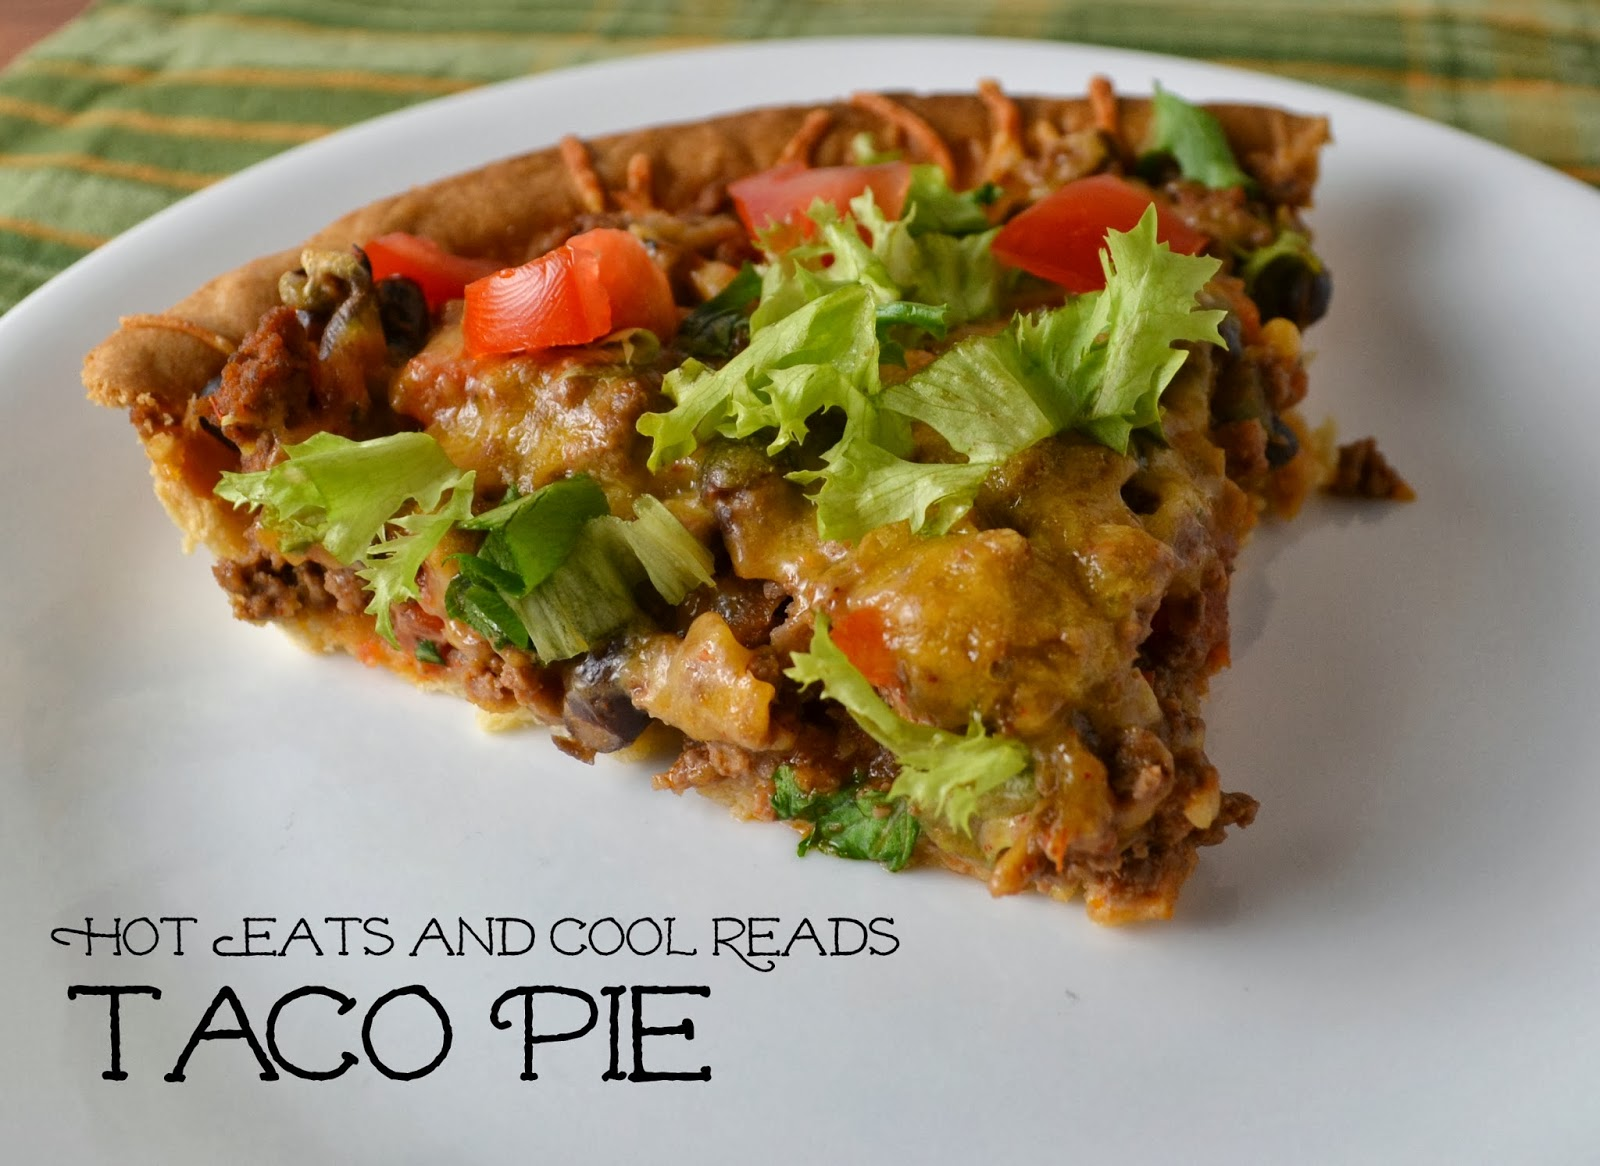 Hot eats and cool reads ground beef taco pie recipe ground beef taco pie recipe forumfinder Gallery